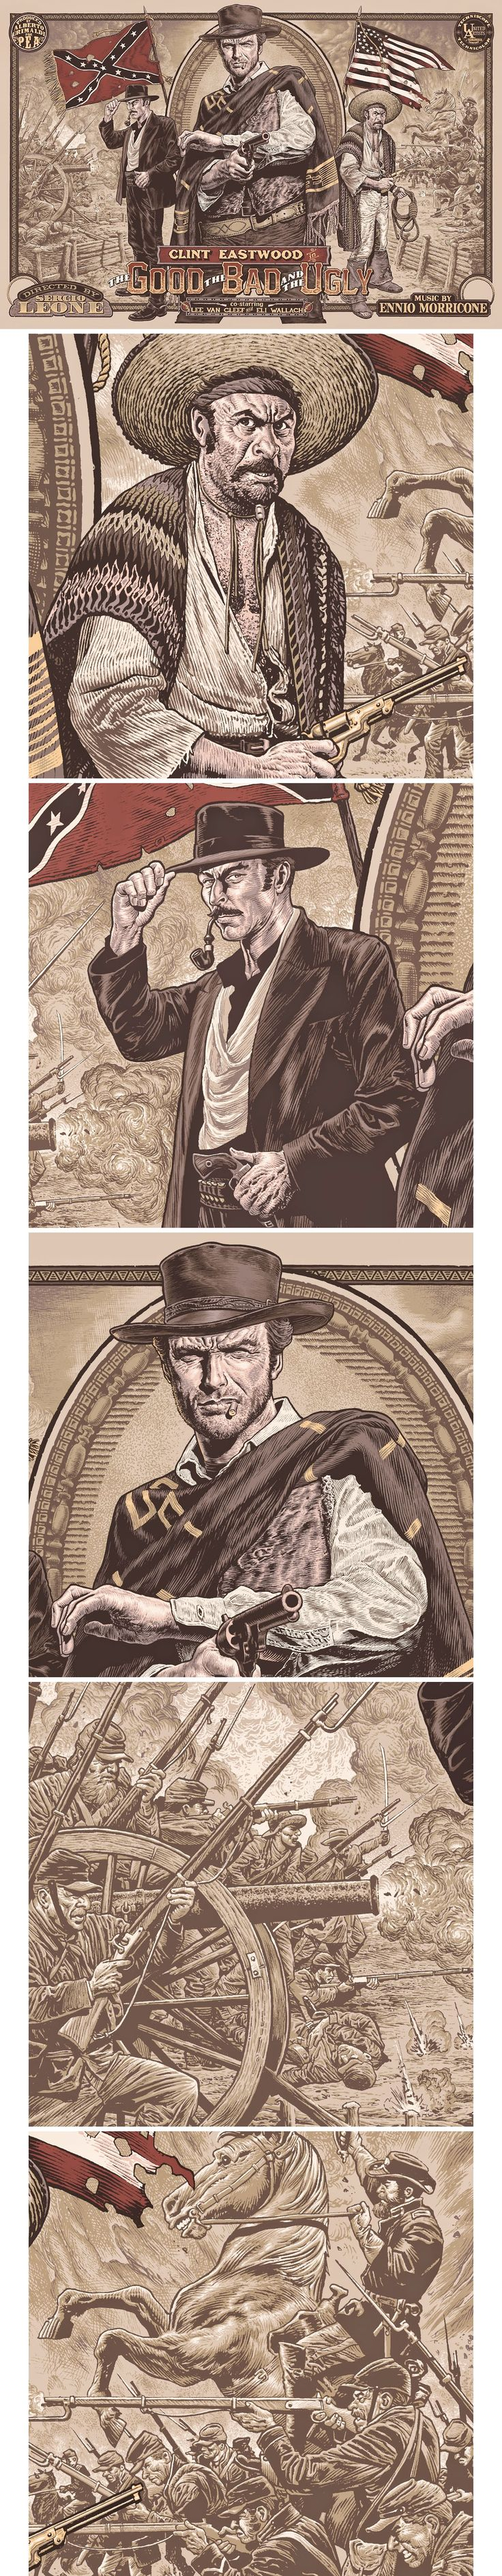 The Good, The Bad & The Ugly by Chris Weston